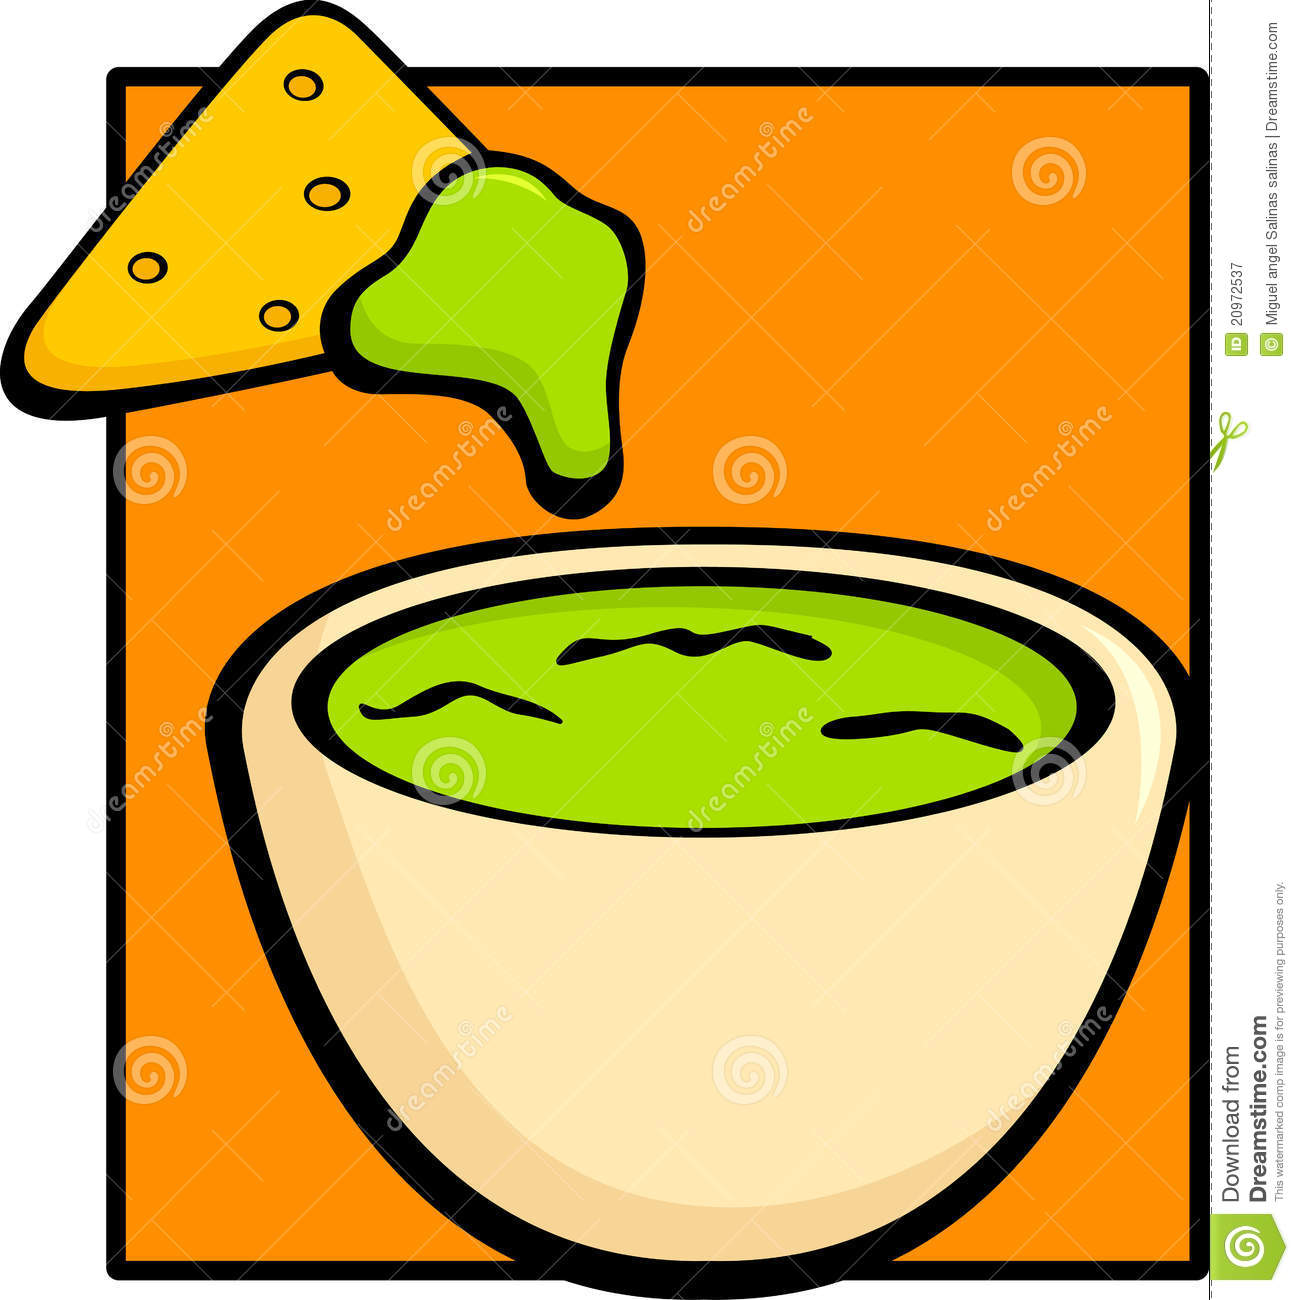 Guacamole And Tortilla Chip Royalty Free Stock Photography - Image ...